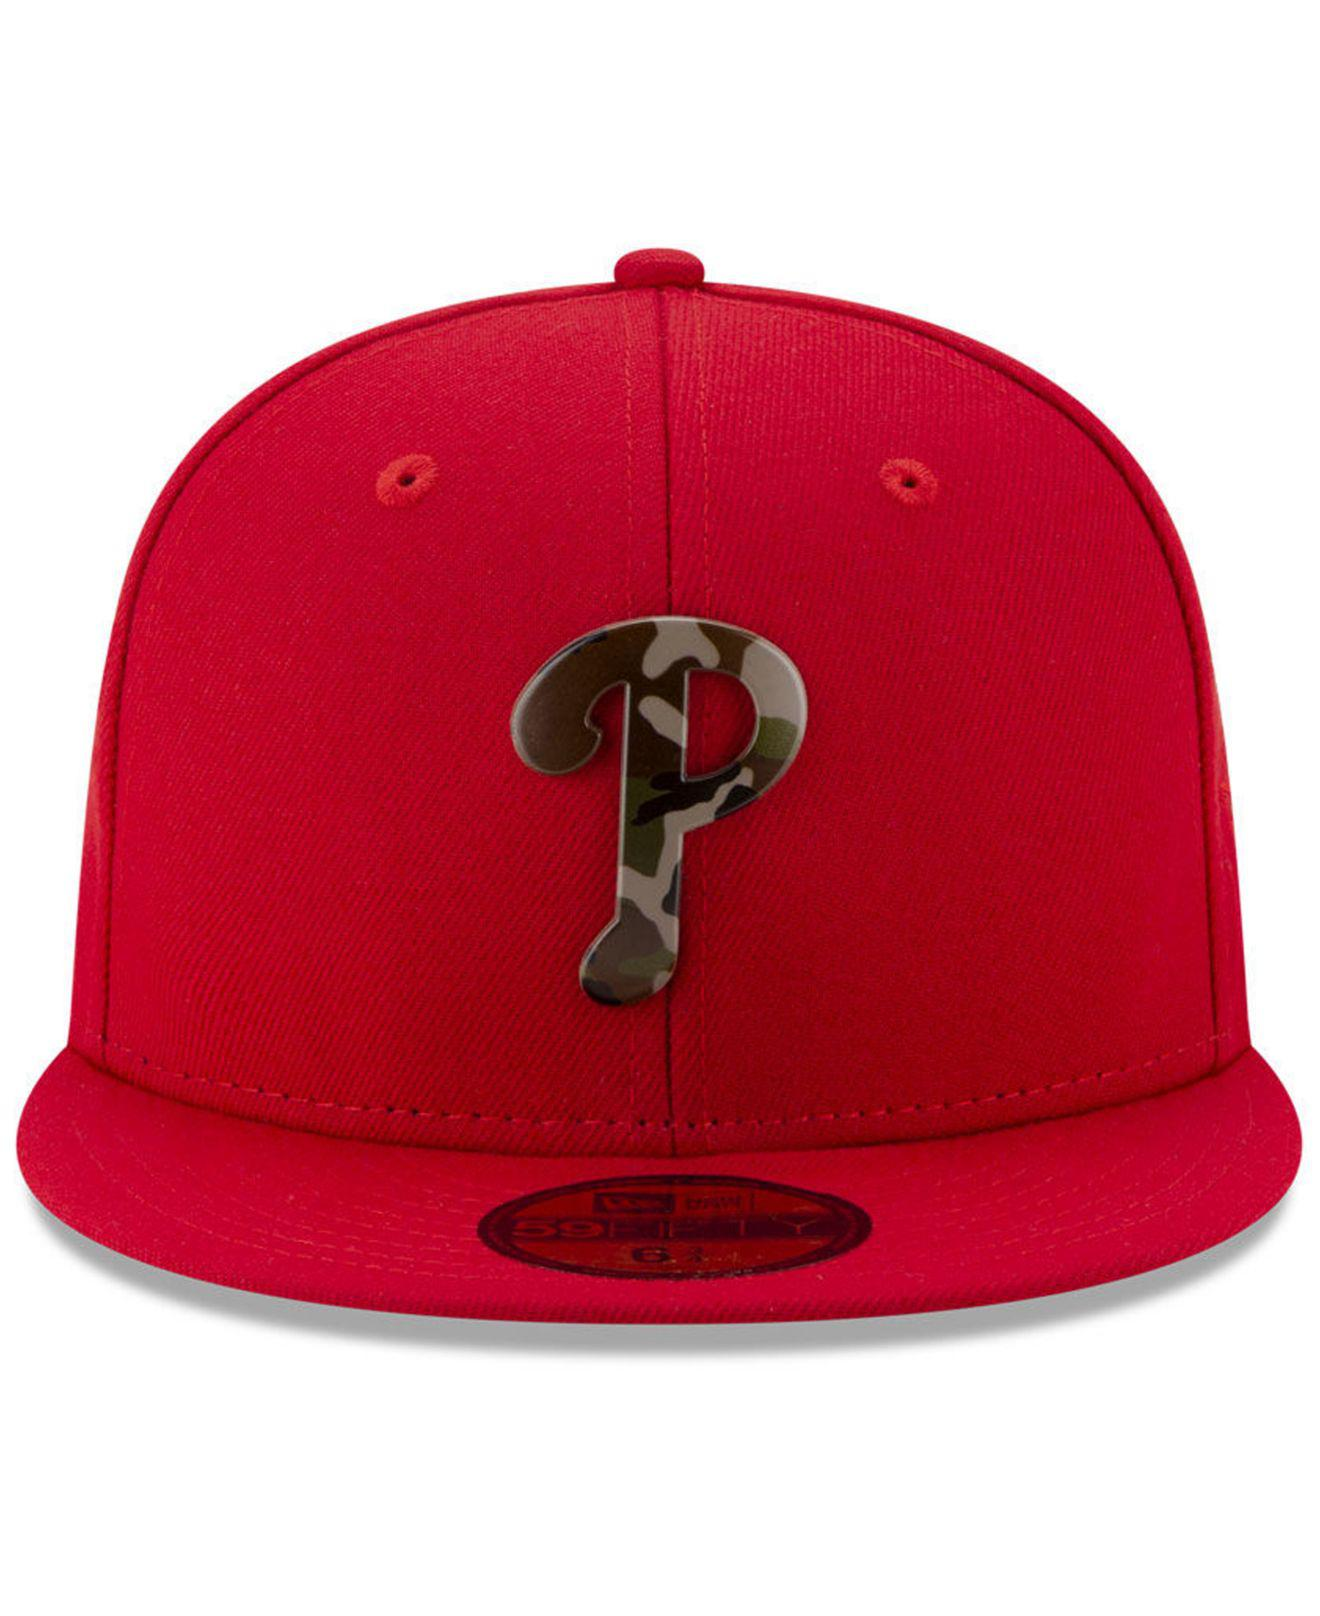 sale retailer a482b 4a938 Lyst - KTZ Philadelphia Phillies Camo Capped 59fifty-fitted Cap in Red for  Men